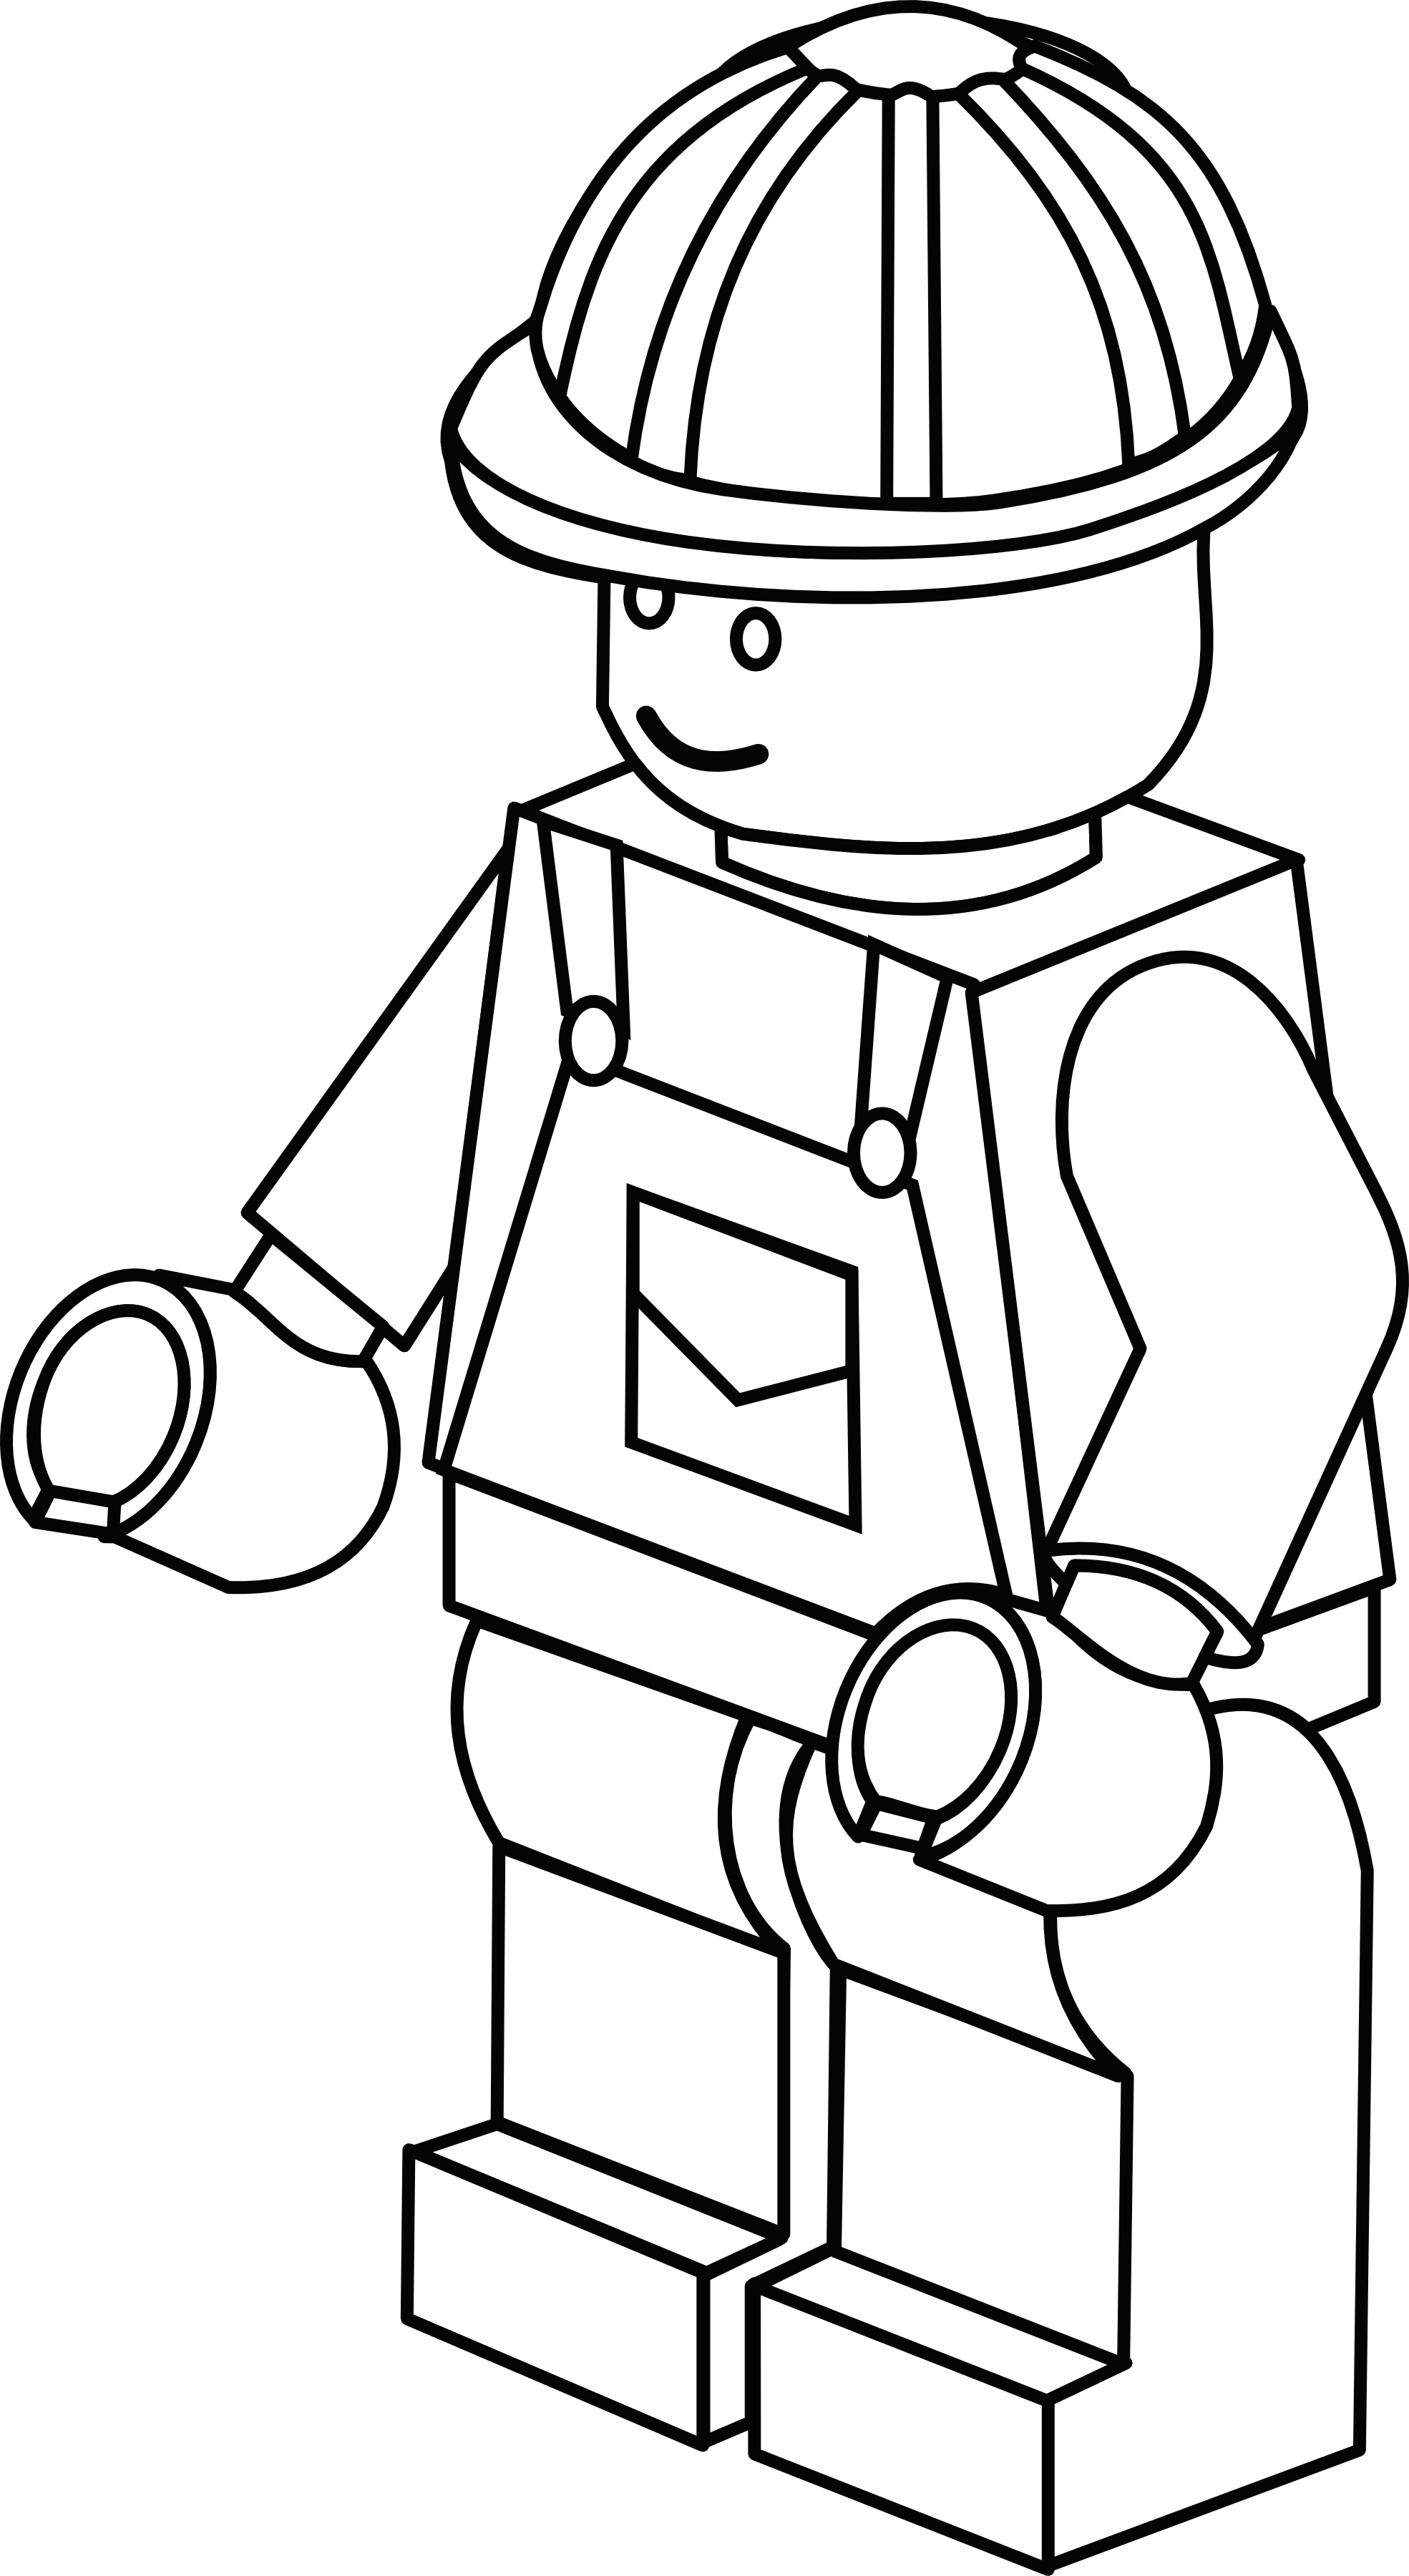 more plex lego figure colouring sheet lego 1st birthday LEGO Old Cars more plex lego figure colouring sheet